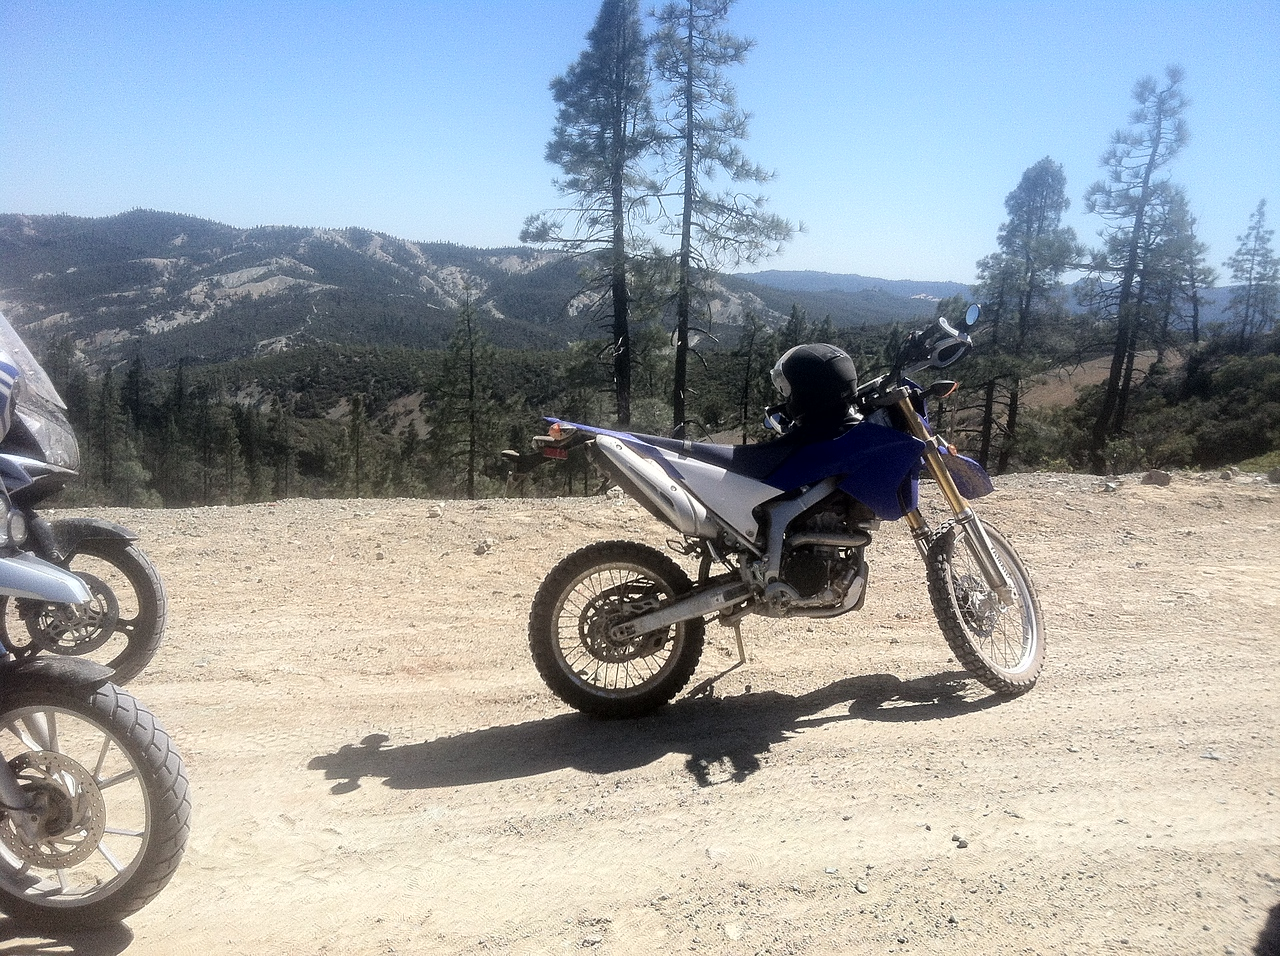 I'm back on motorcycles after almost 6 years off.  This is my 2012 Yamaha WR250R.  Street legal but designed with off-pavement riding in mind.  I'm amazed at how much this bike can do.